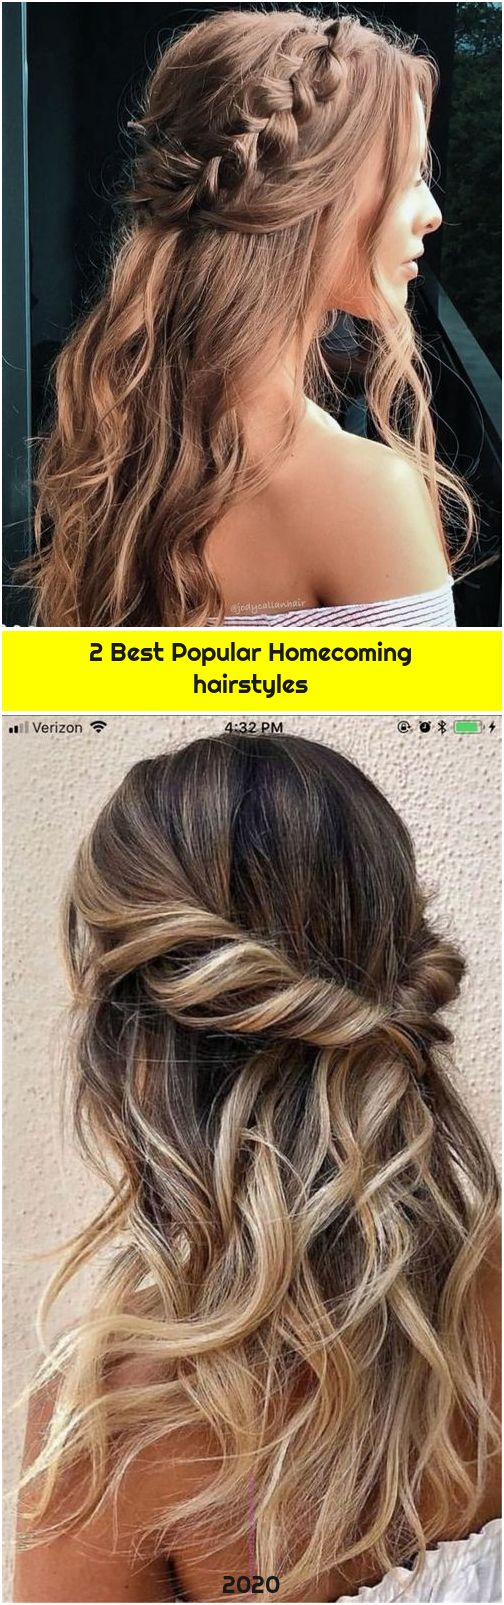 2 Best Popular Homecoming hairstyles